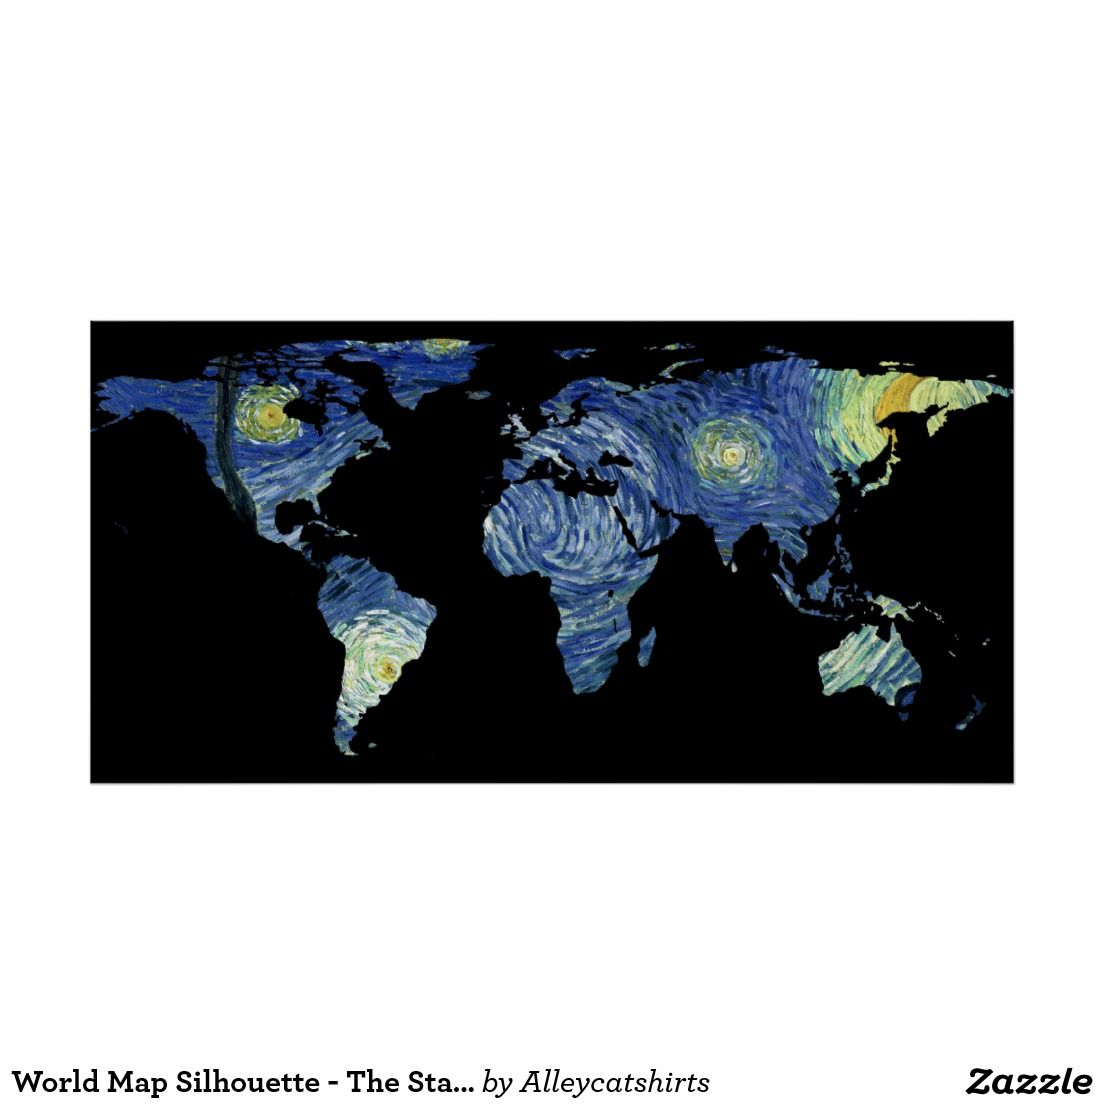 World map silhouette the starry night poster silhouette world map silhouette the starry night poster gumiabroncs Gallery